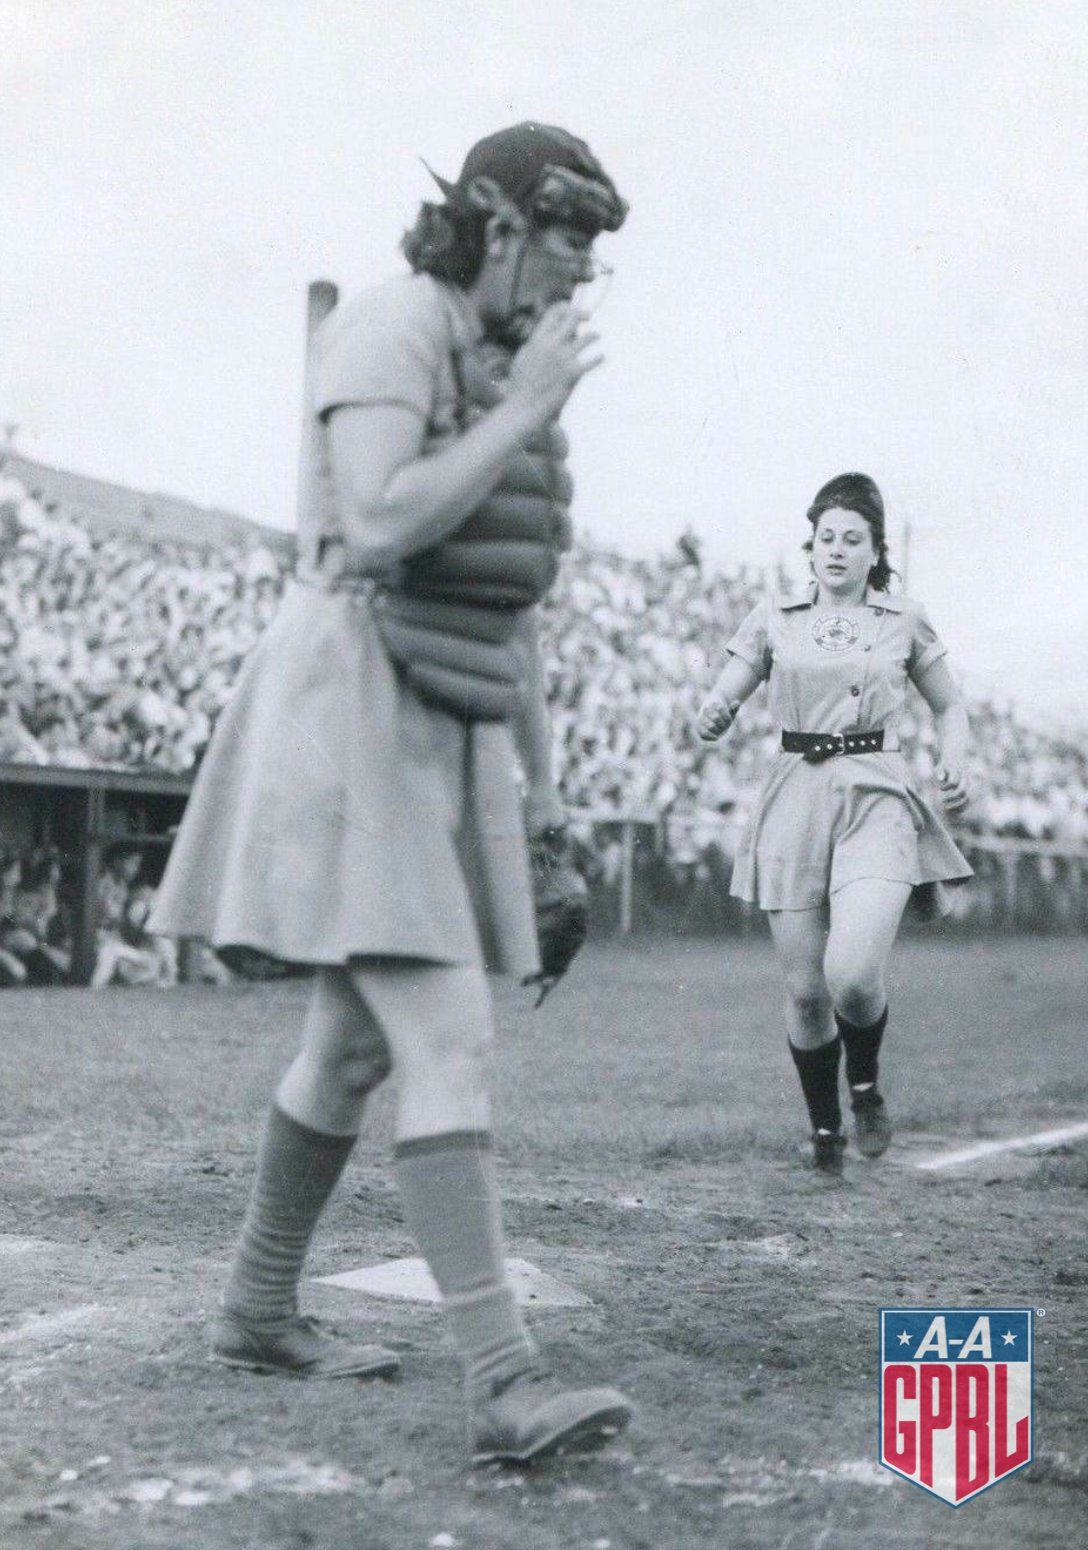 Philomena Gianfrancisco Zale scoring during a 1946 game at South Field in Grand Rapids. The Chicks finished 2nd overall in the regular season with a 71-41 record, but lost to the Peaches in the first round of the playoffs. Grand Rapids would win the League champs the next season. https://t.co/BjAYbHbMCf